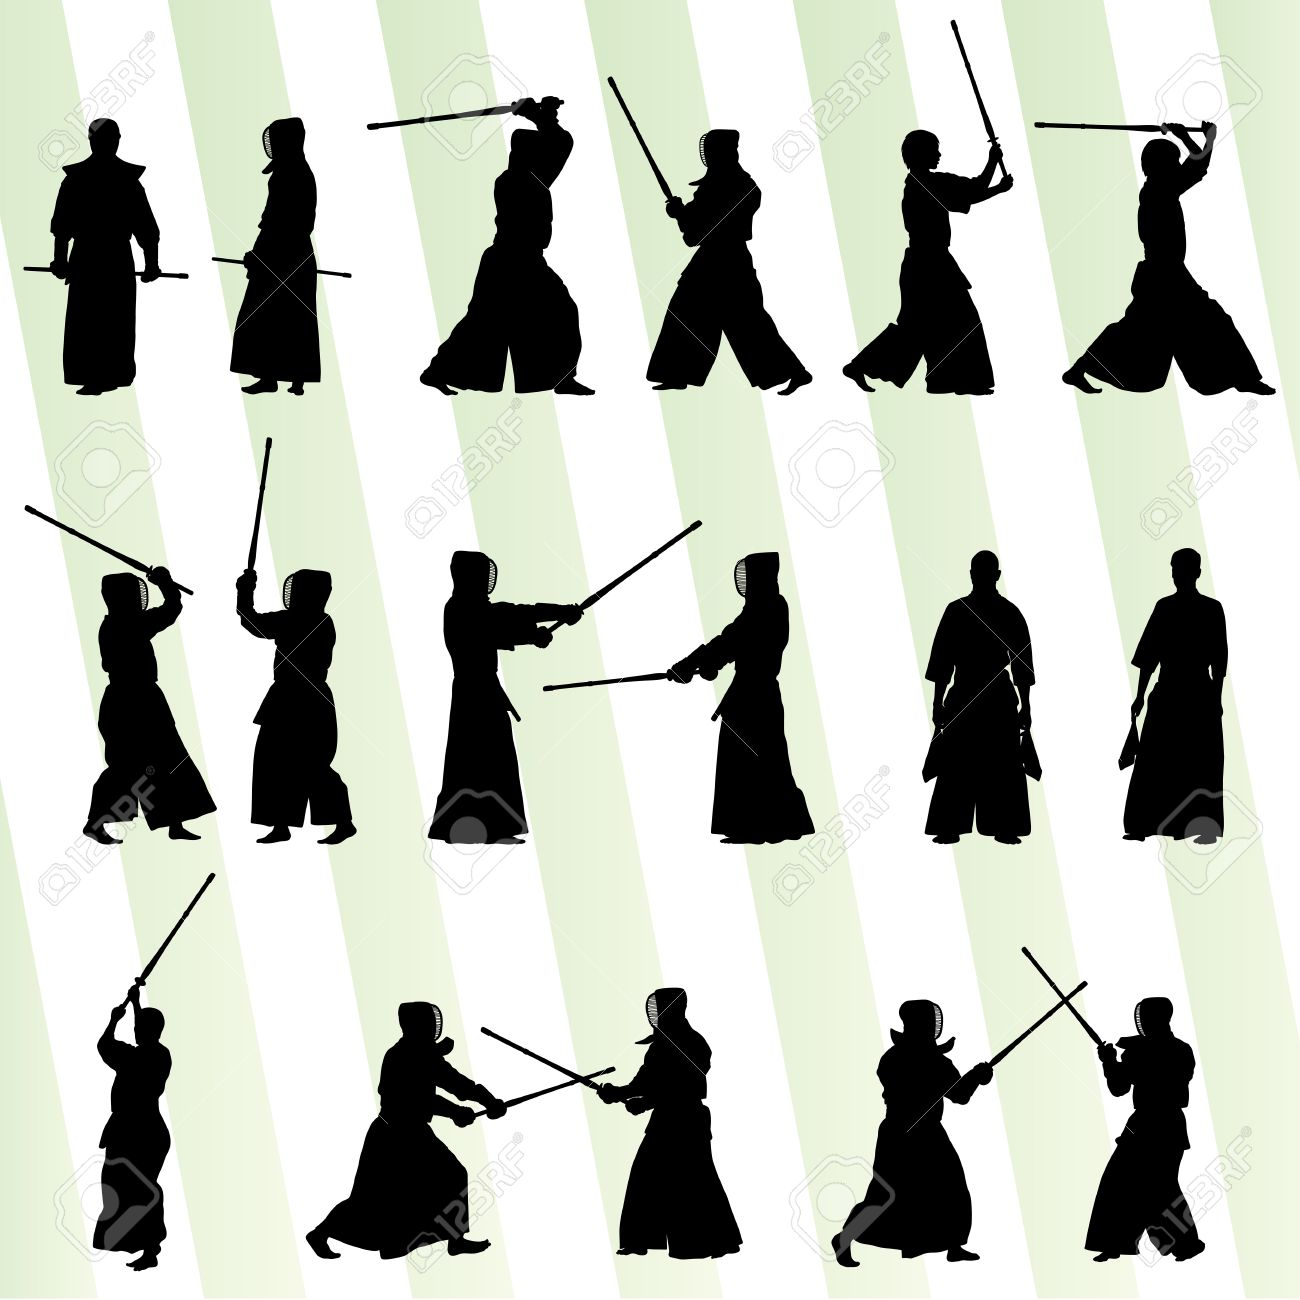 Active japanese Kendo sword martial arts fighters sport silhouettes set vector - 27496643